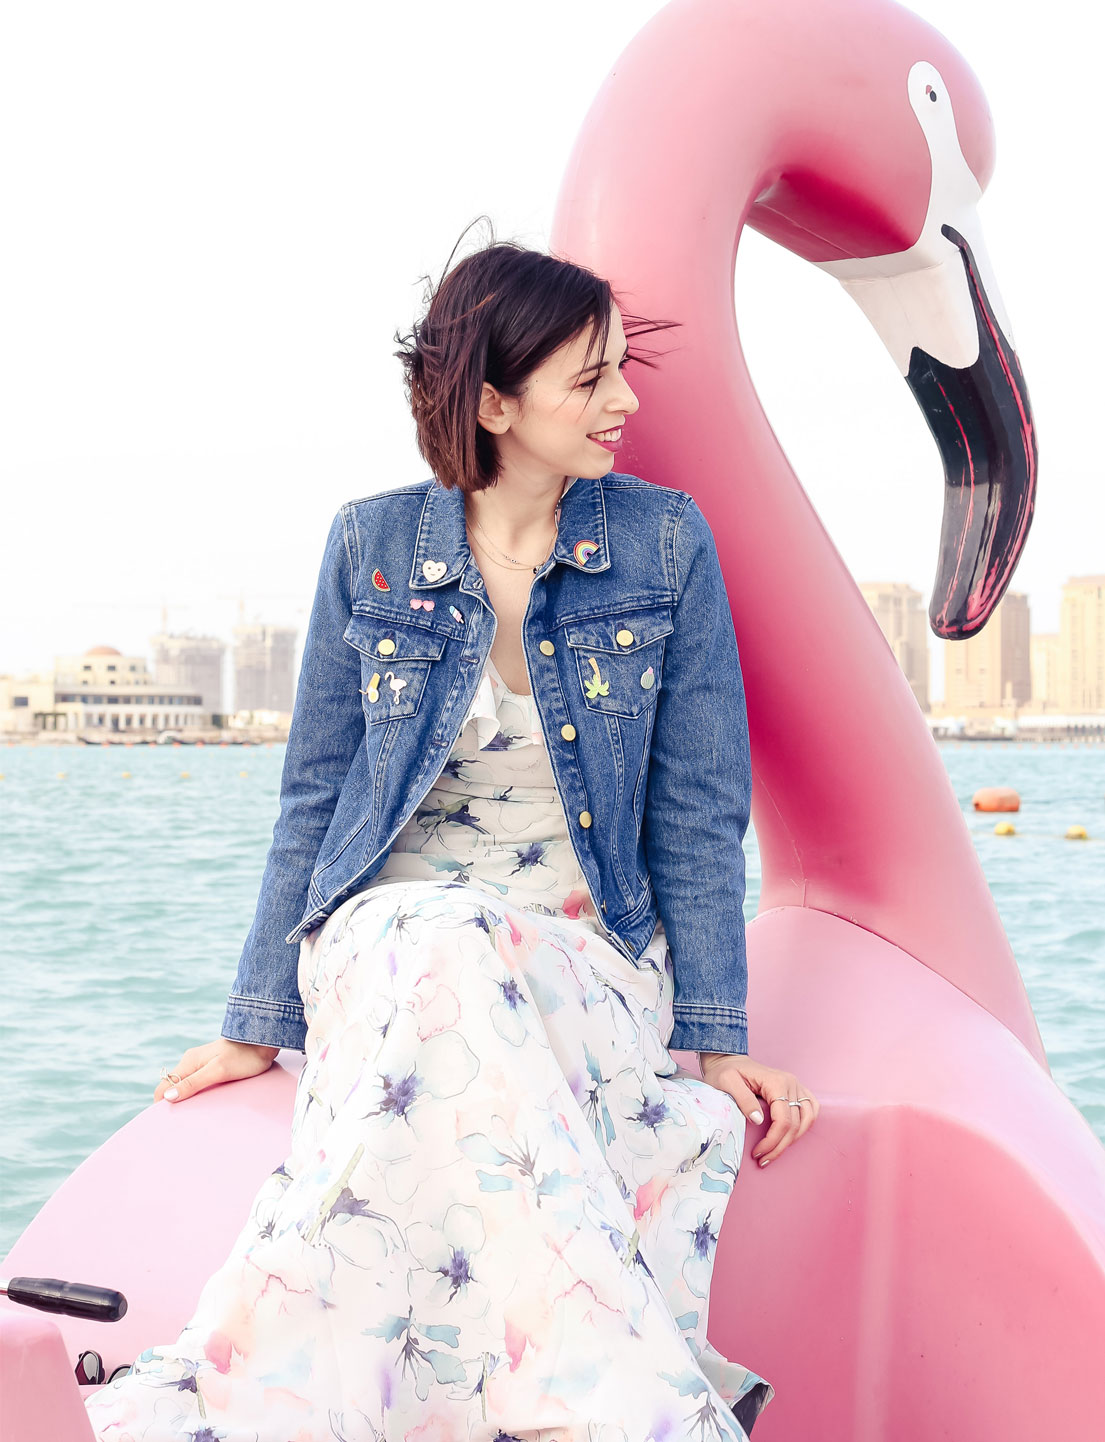 Floral Dress + Flamingo Boat